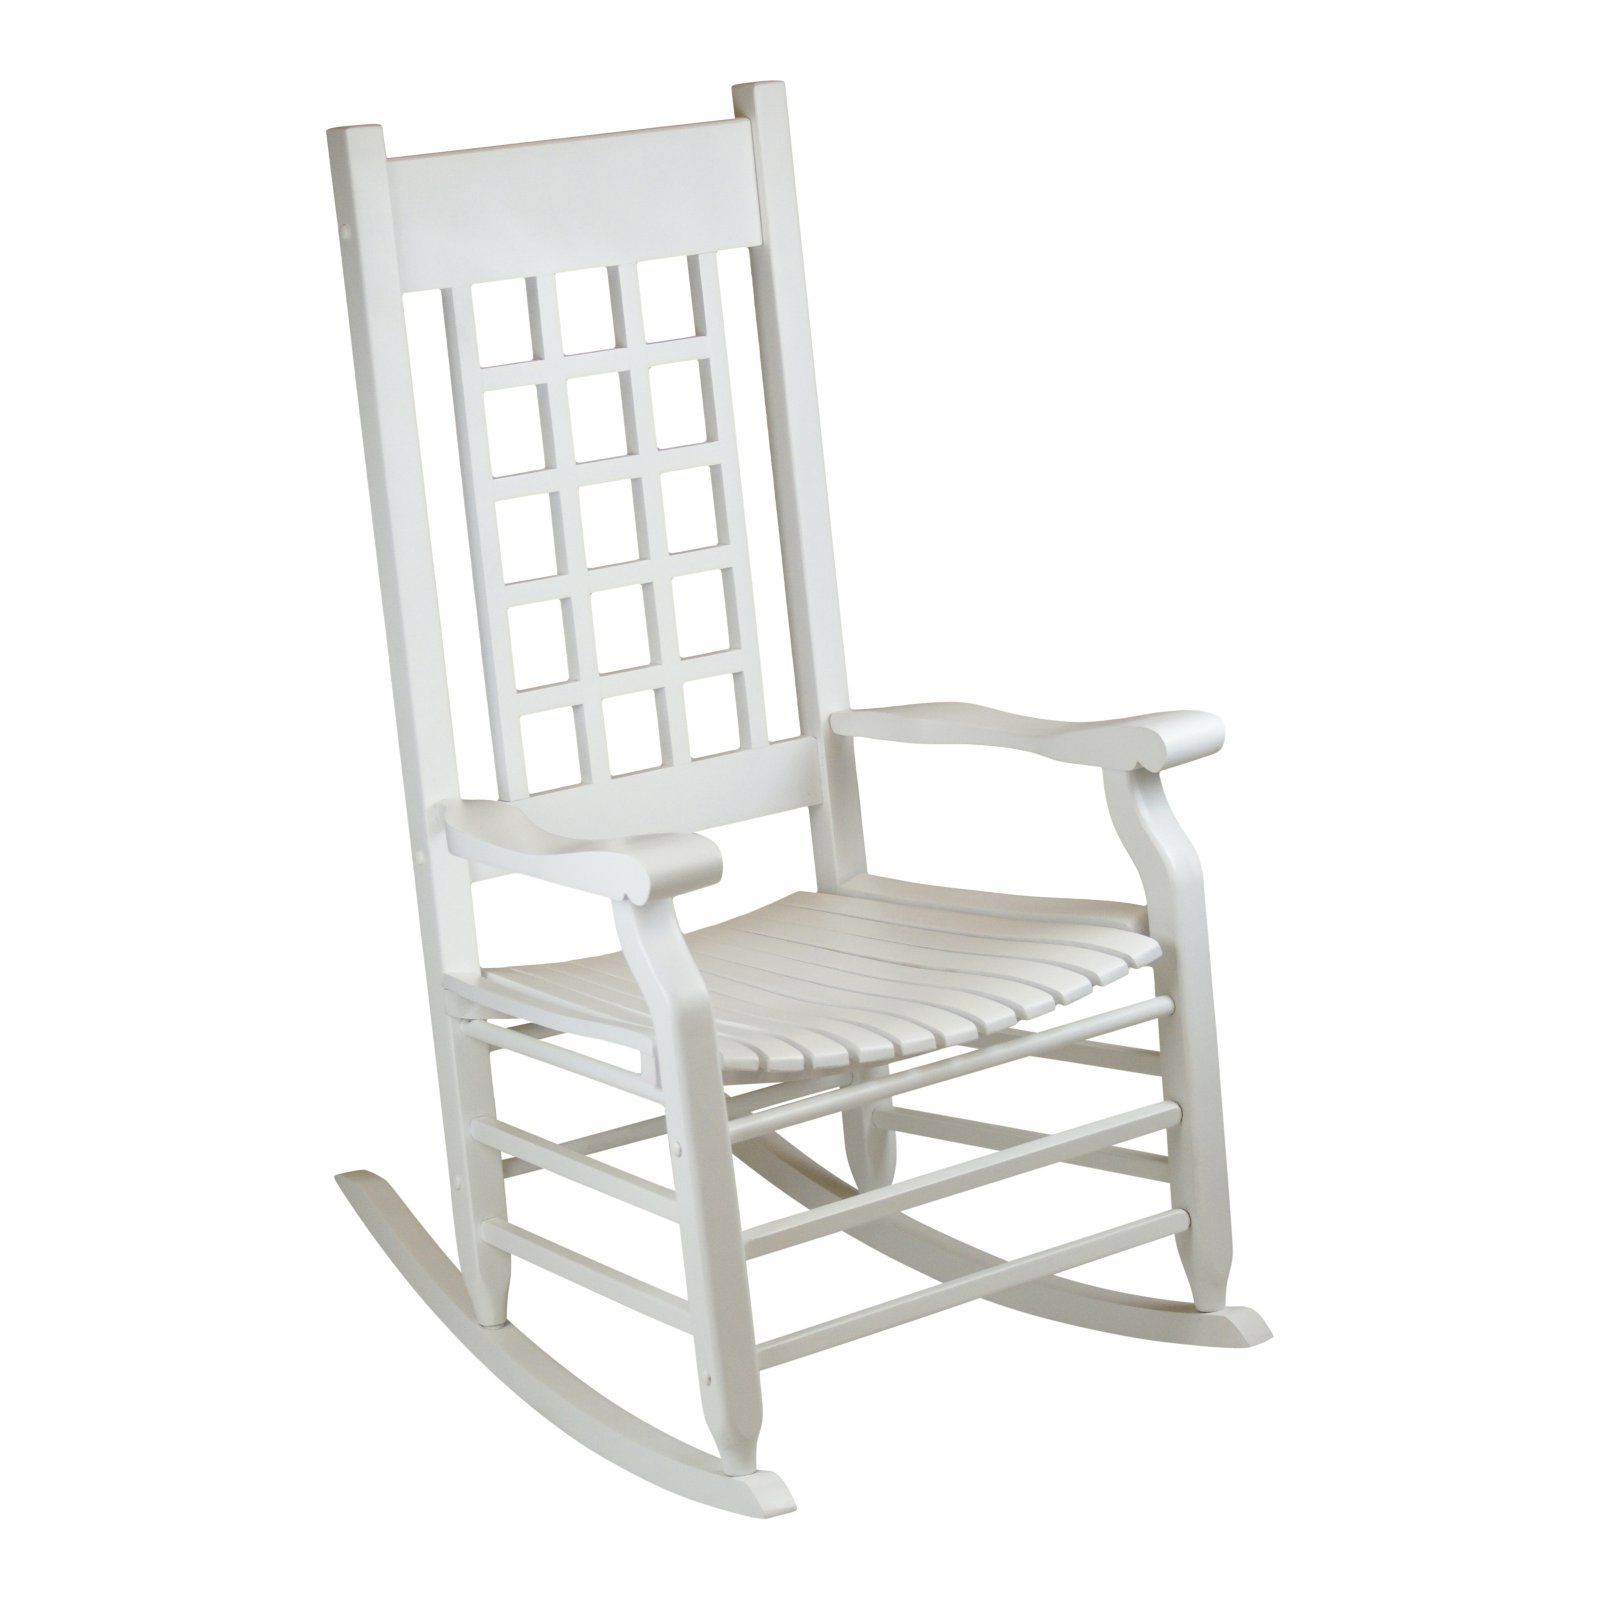 Hinkle Brookfield 1900 Lattice Back Wood Patio Rocking Chair